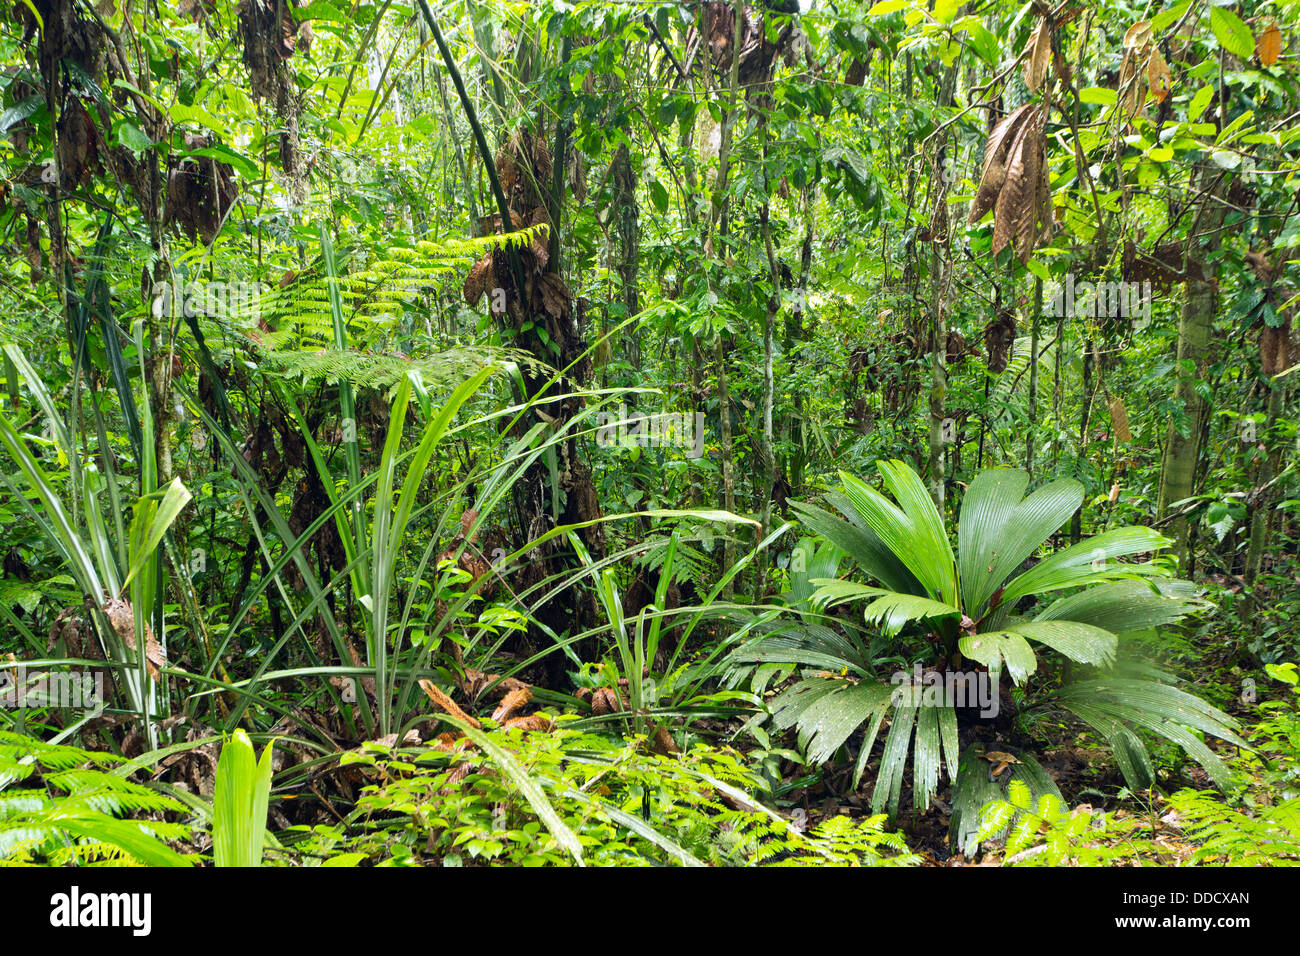 Rainforest glade with a Geonoma palm and giant sedge in foreground, Ecuador - Stock Image